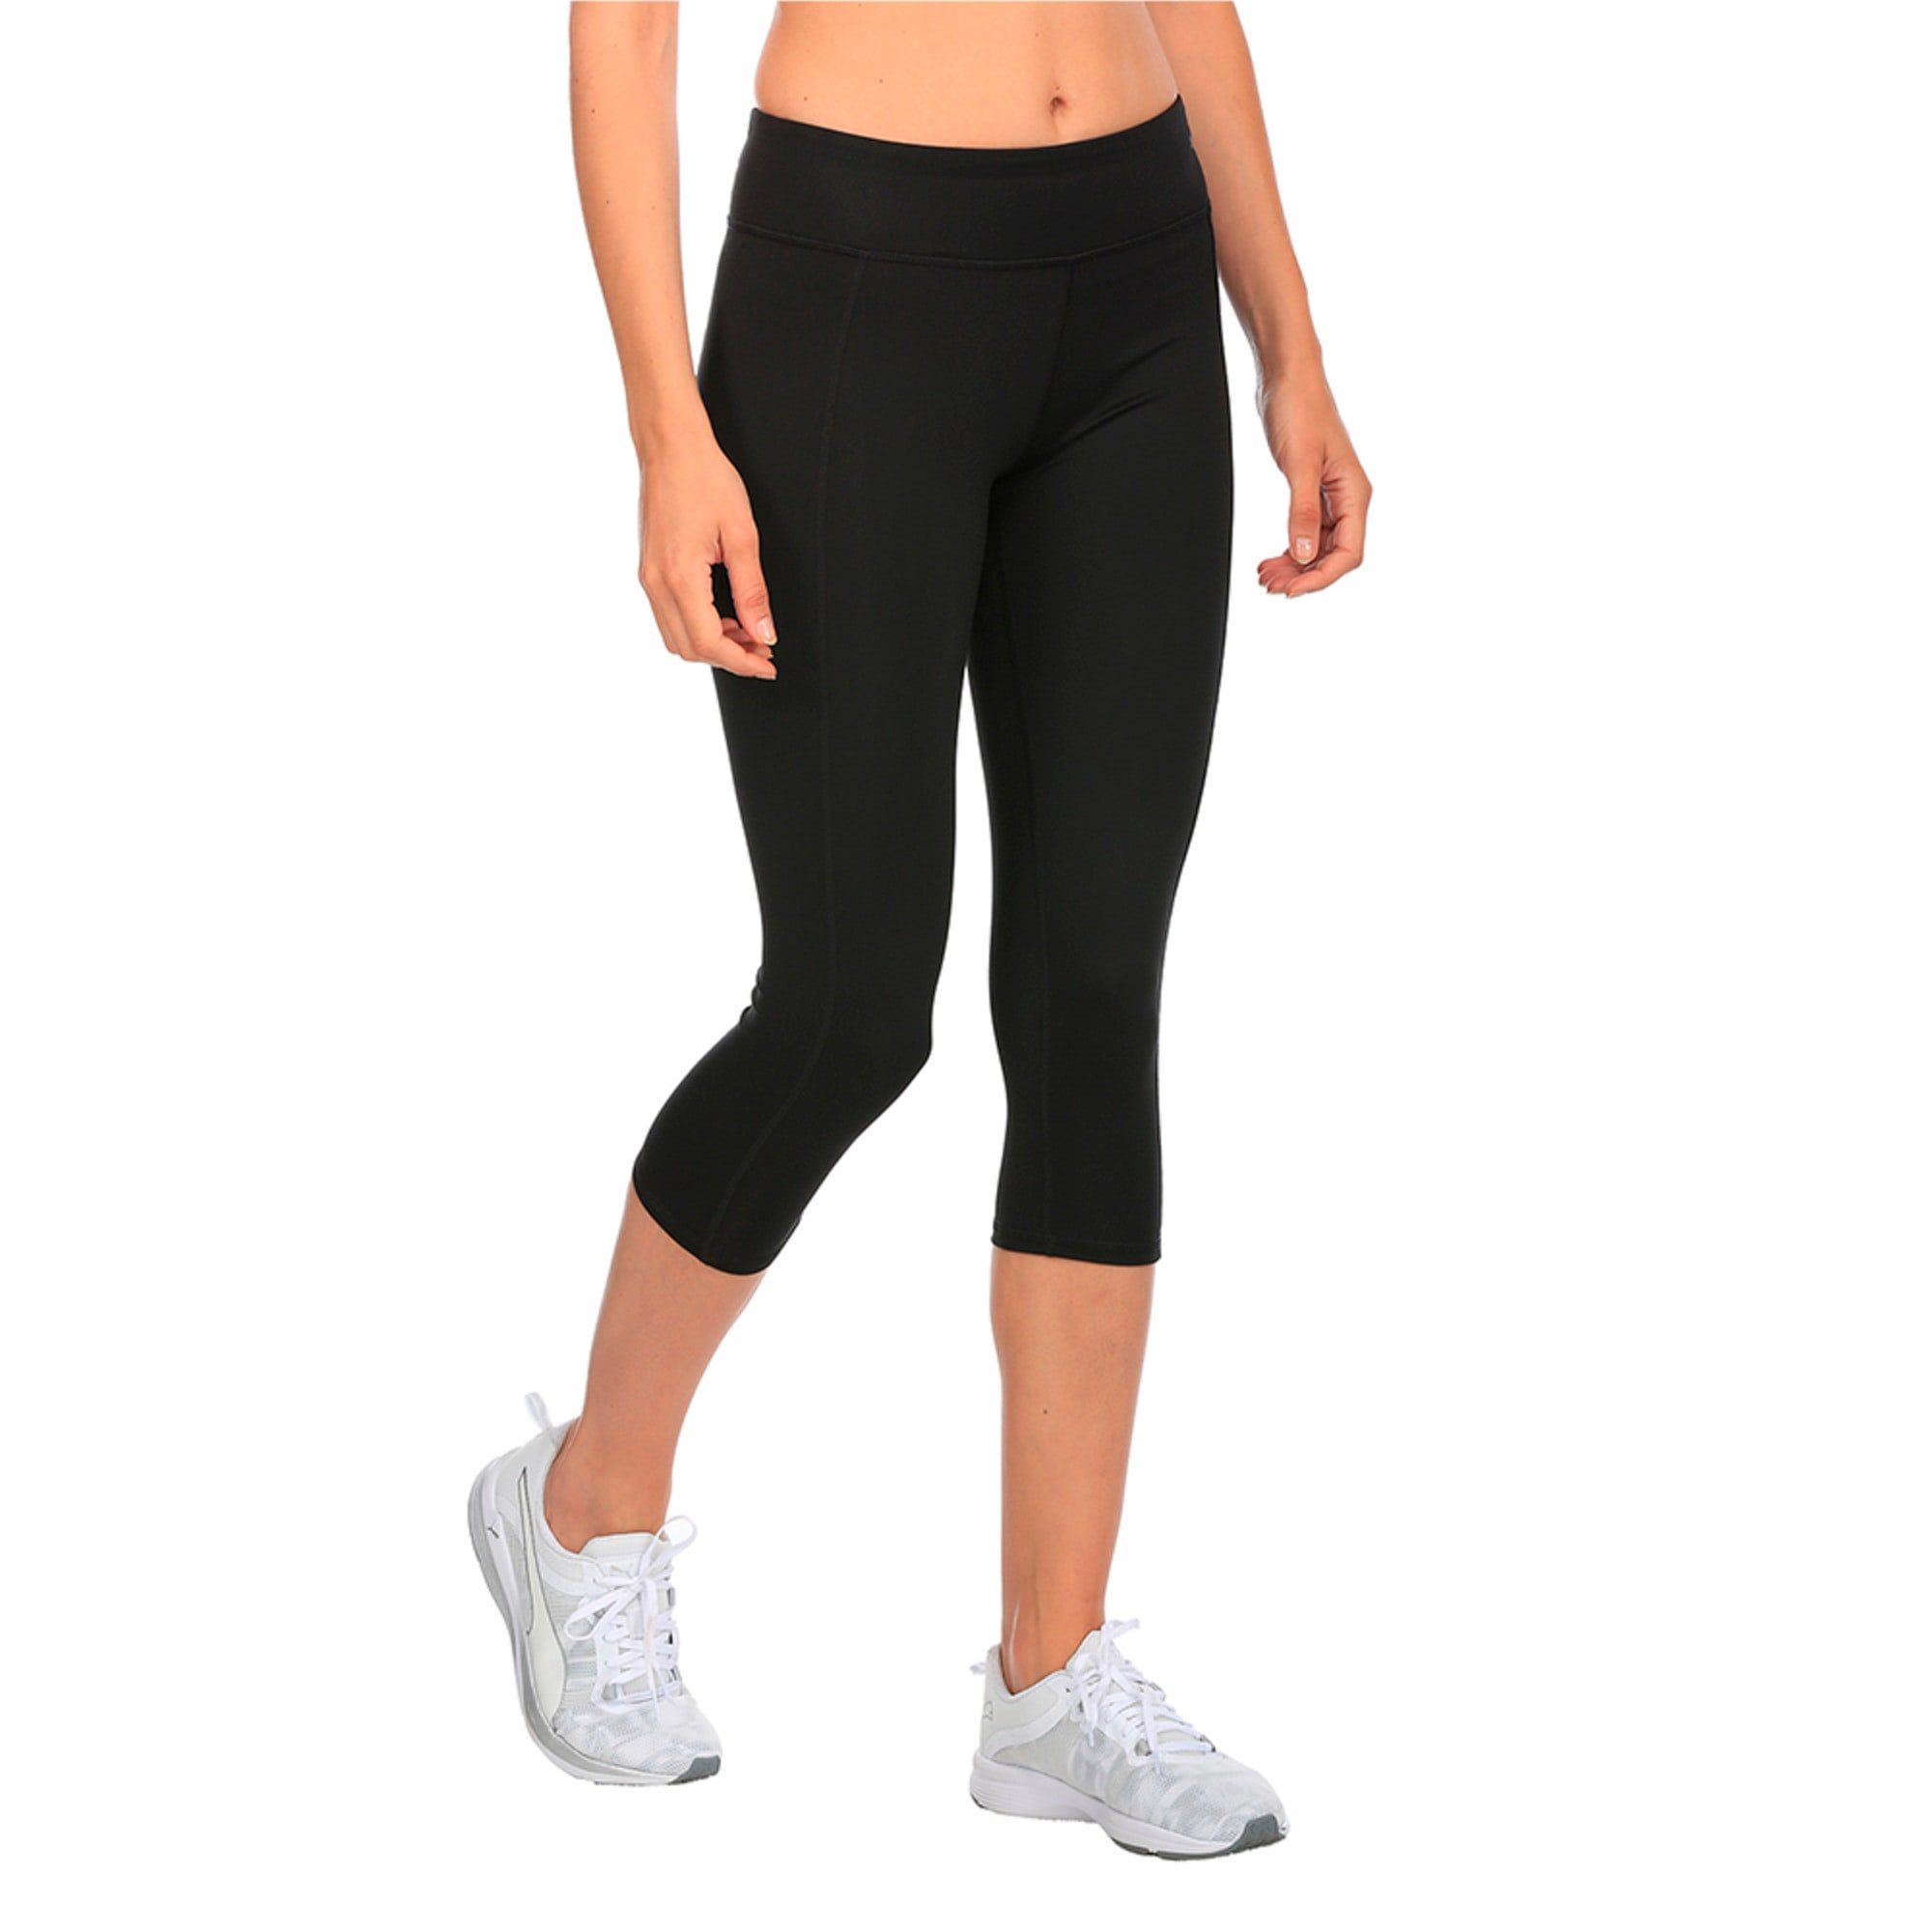 Thumbnail 2 of Essential 3 4 Tight, Puma Black, medium-IND